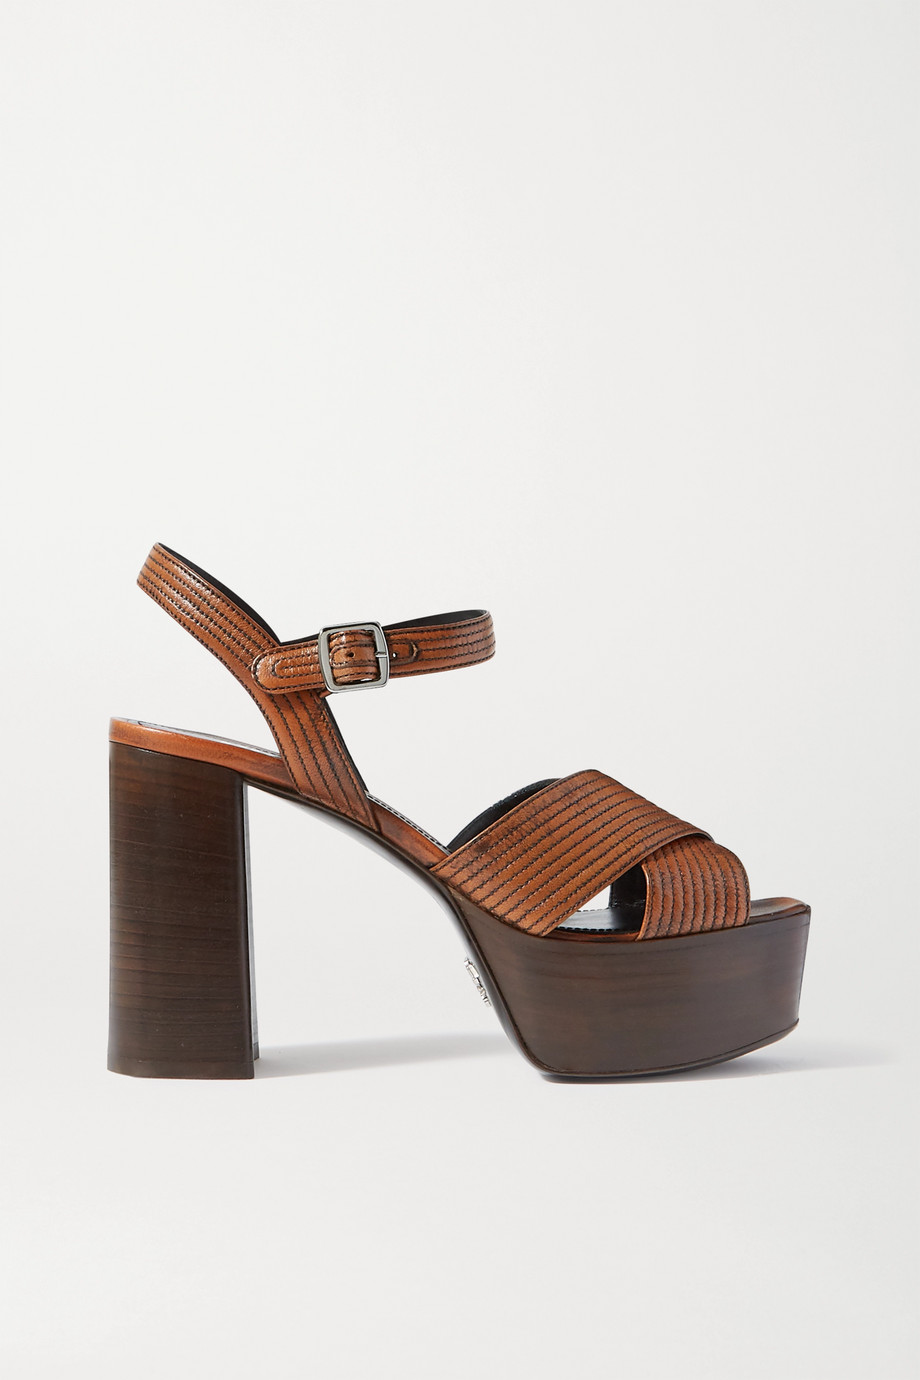 Prada 105 leather platform sandals